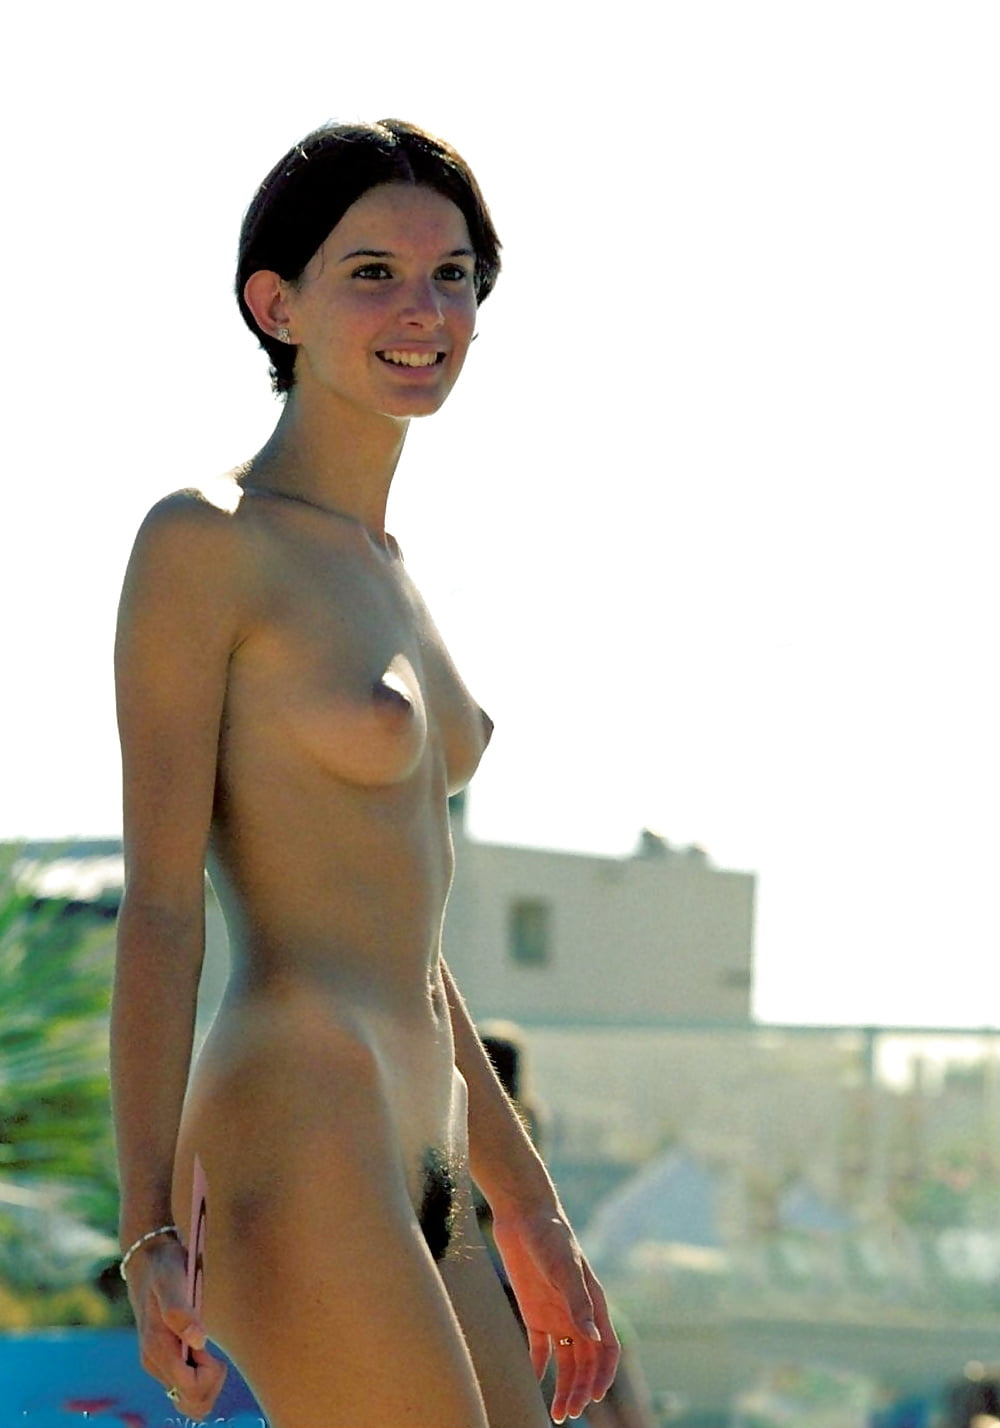 Teen Nudist Pageant No 6 - 6 Fotos - Xhamstercom-8106